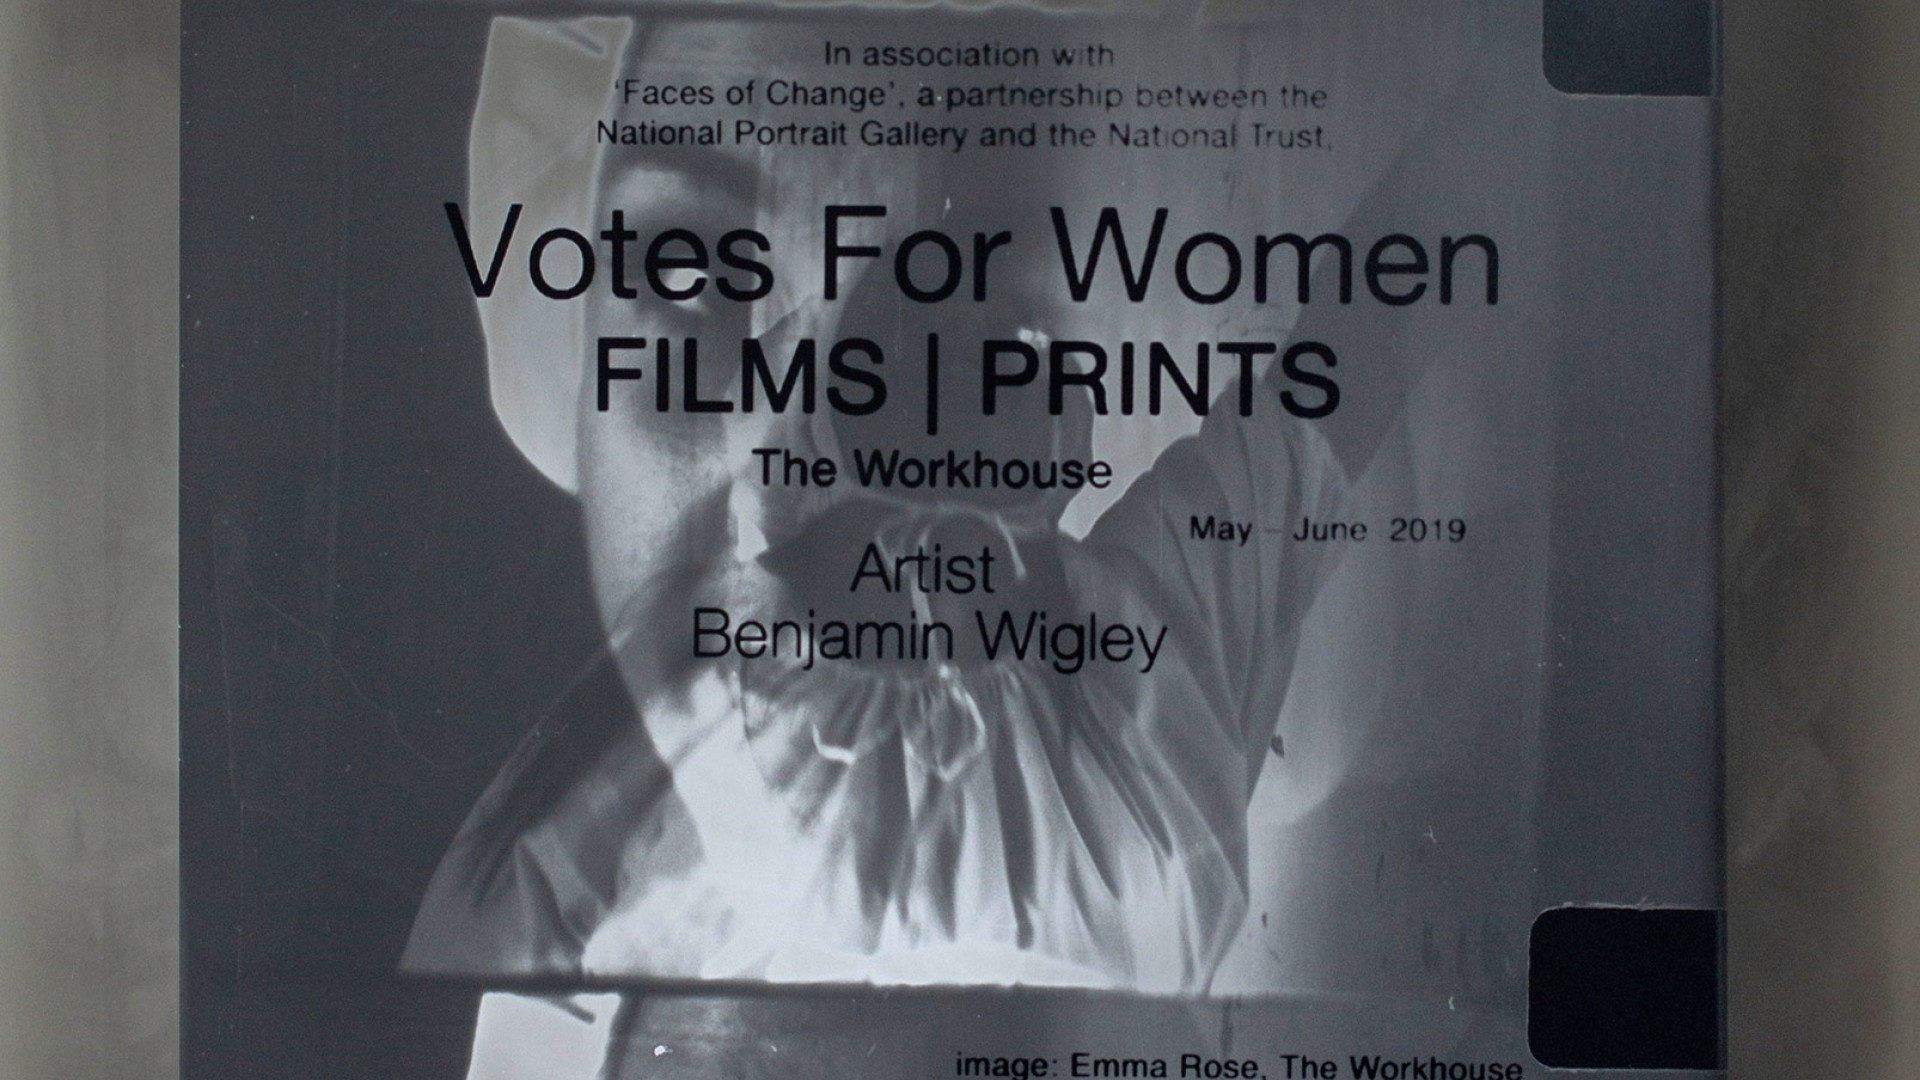 Votes for Women FILM|PRINTS Exhibition